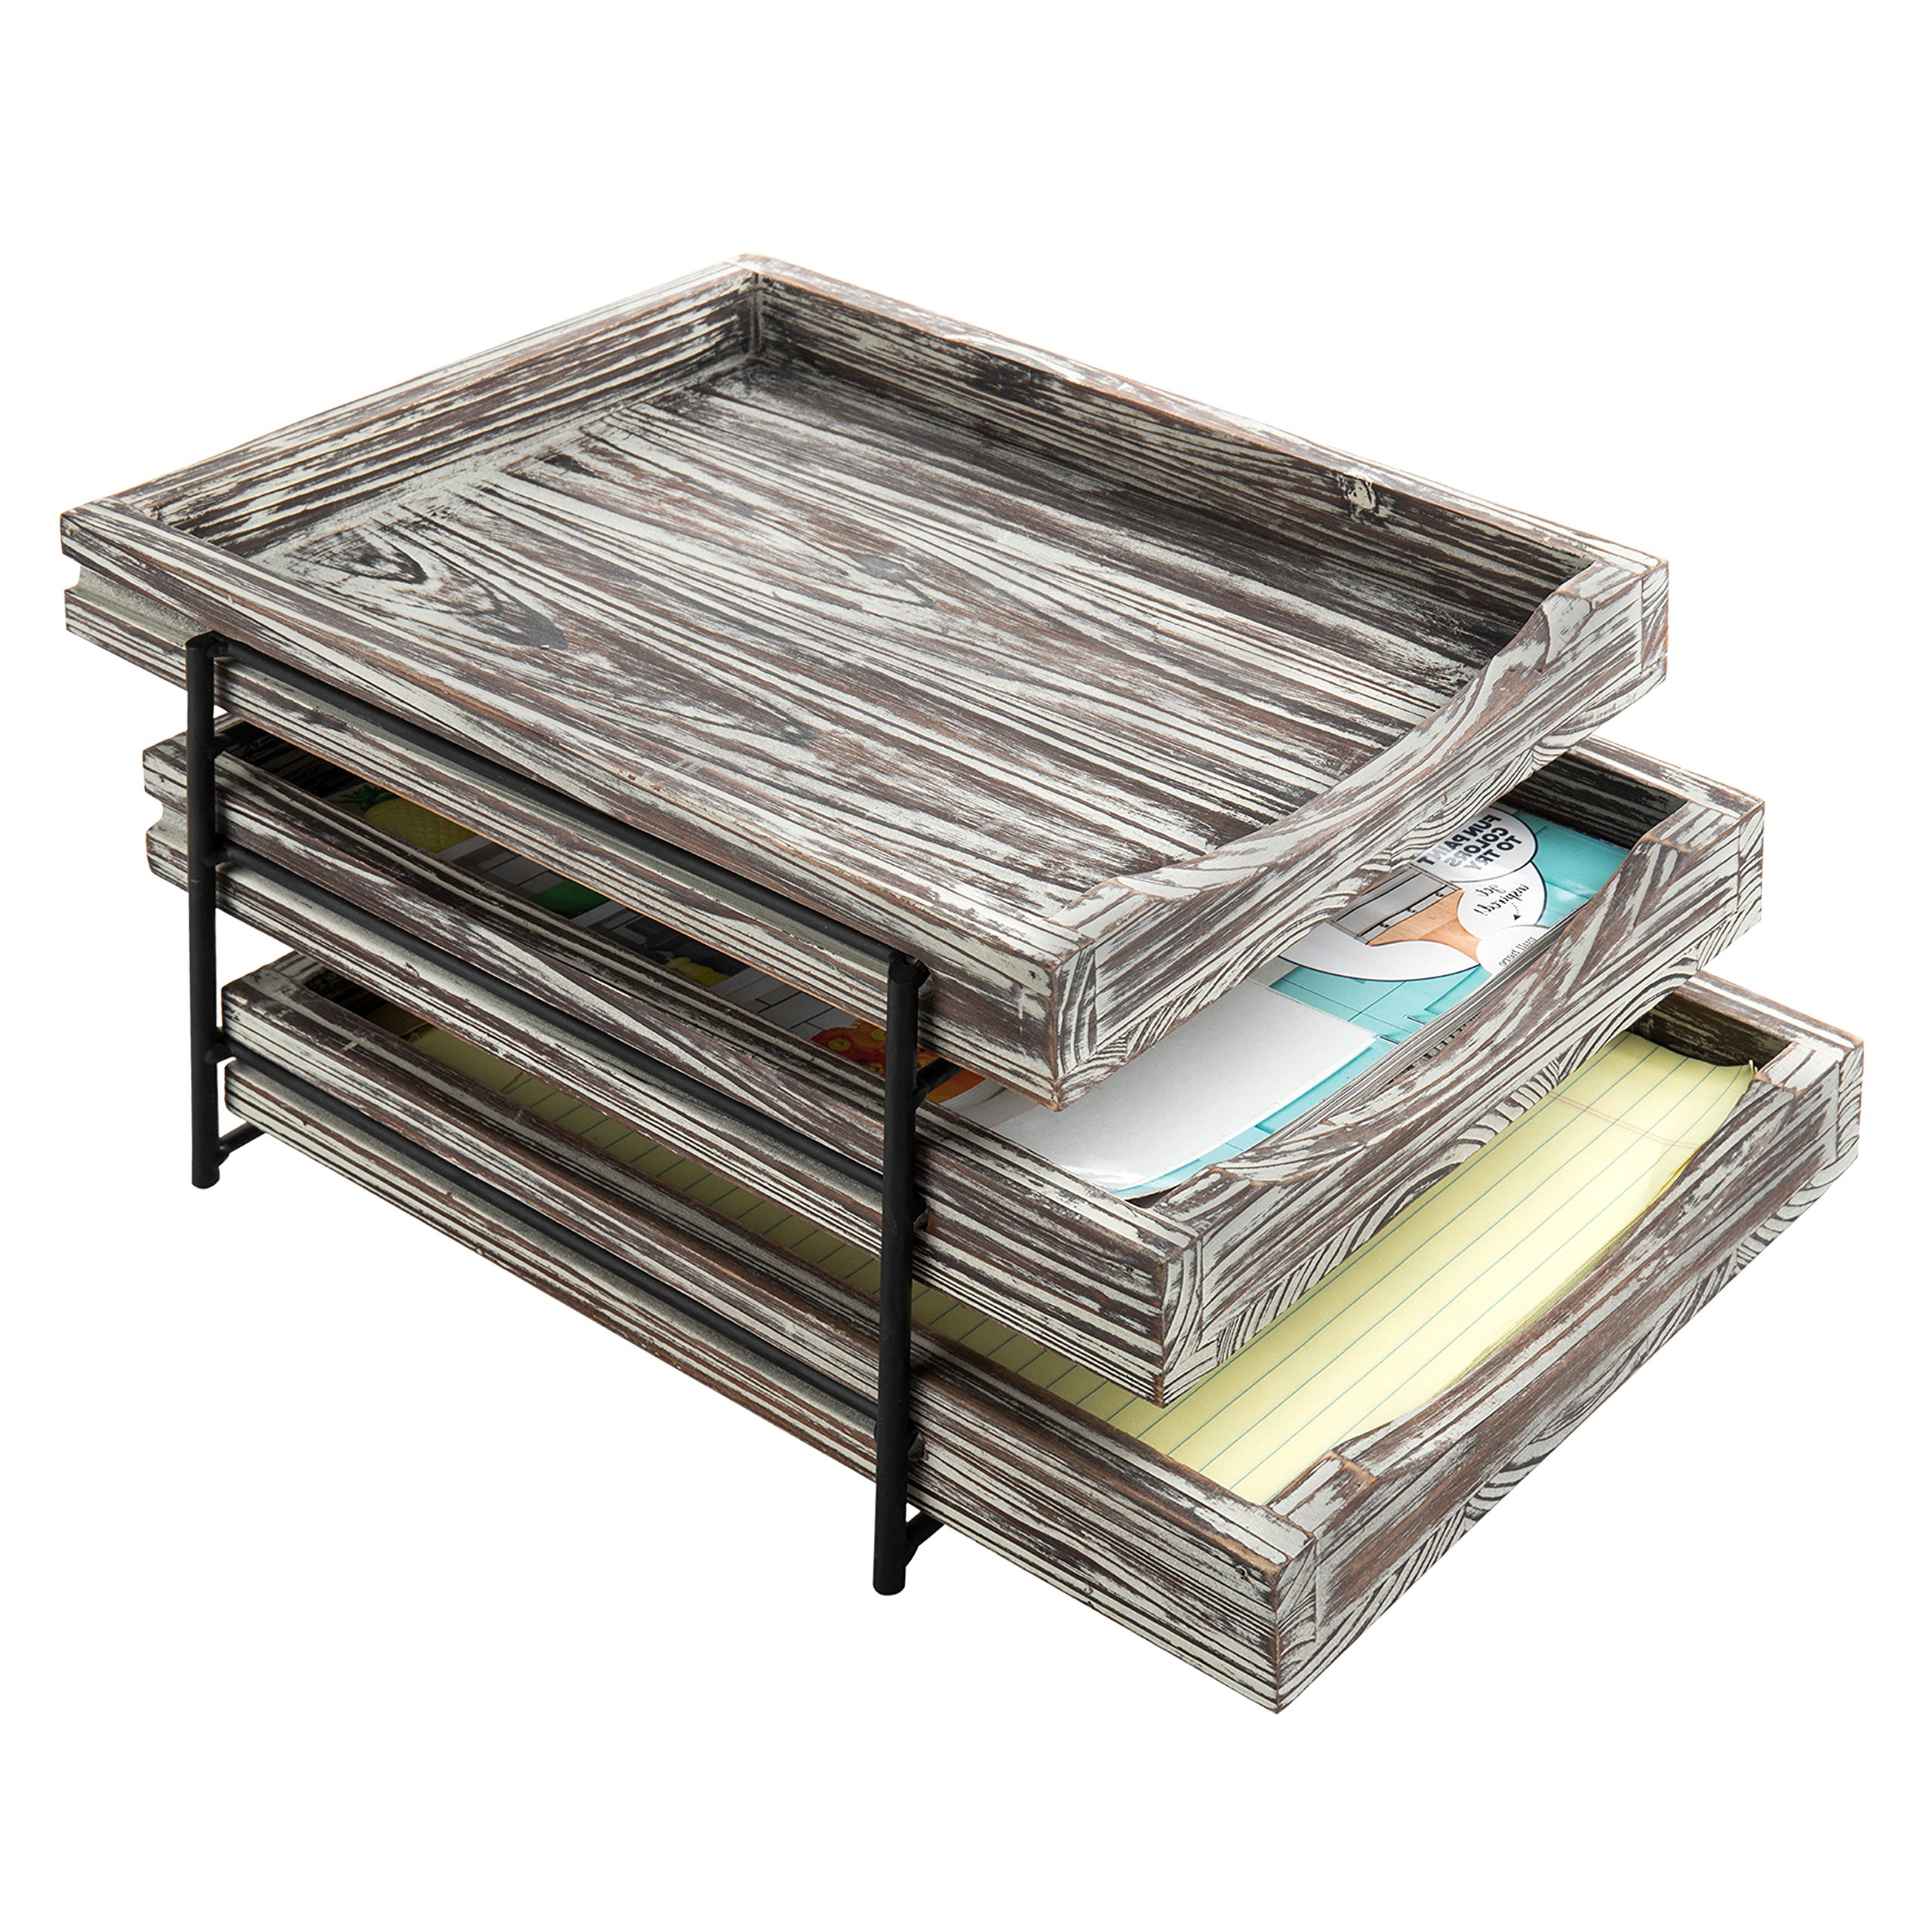 MyGift 3-Tier Rustic Torched Wood & Black Metal Document Organizer with Sliding Trays by MyGift (Image #4)